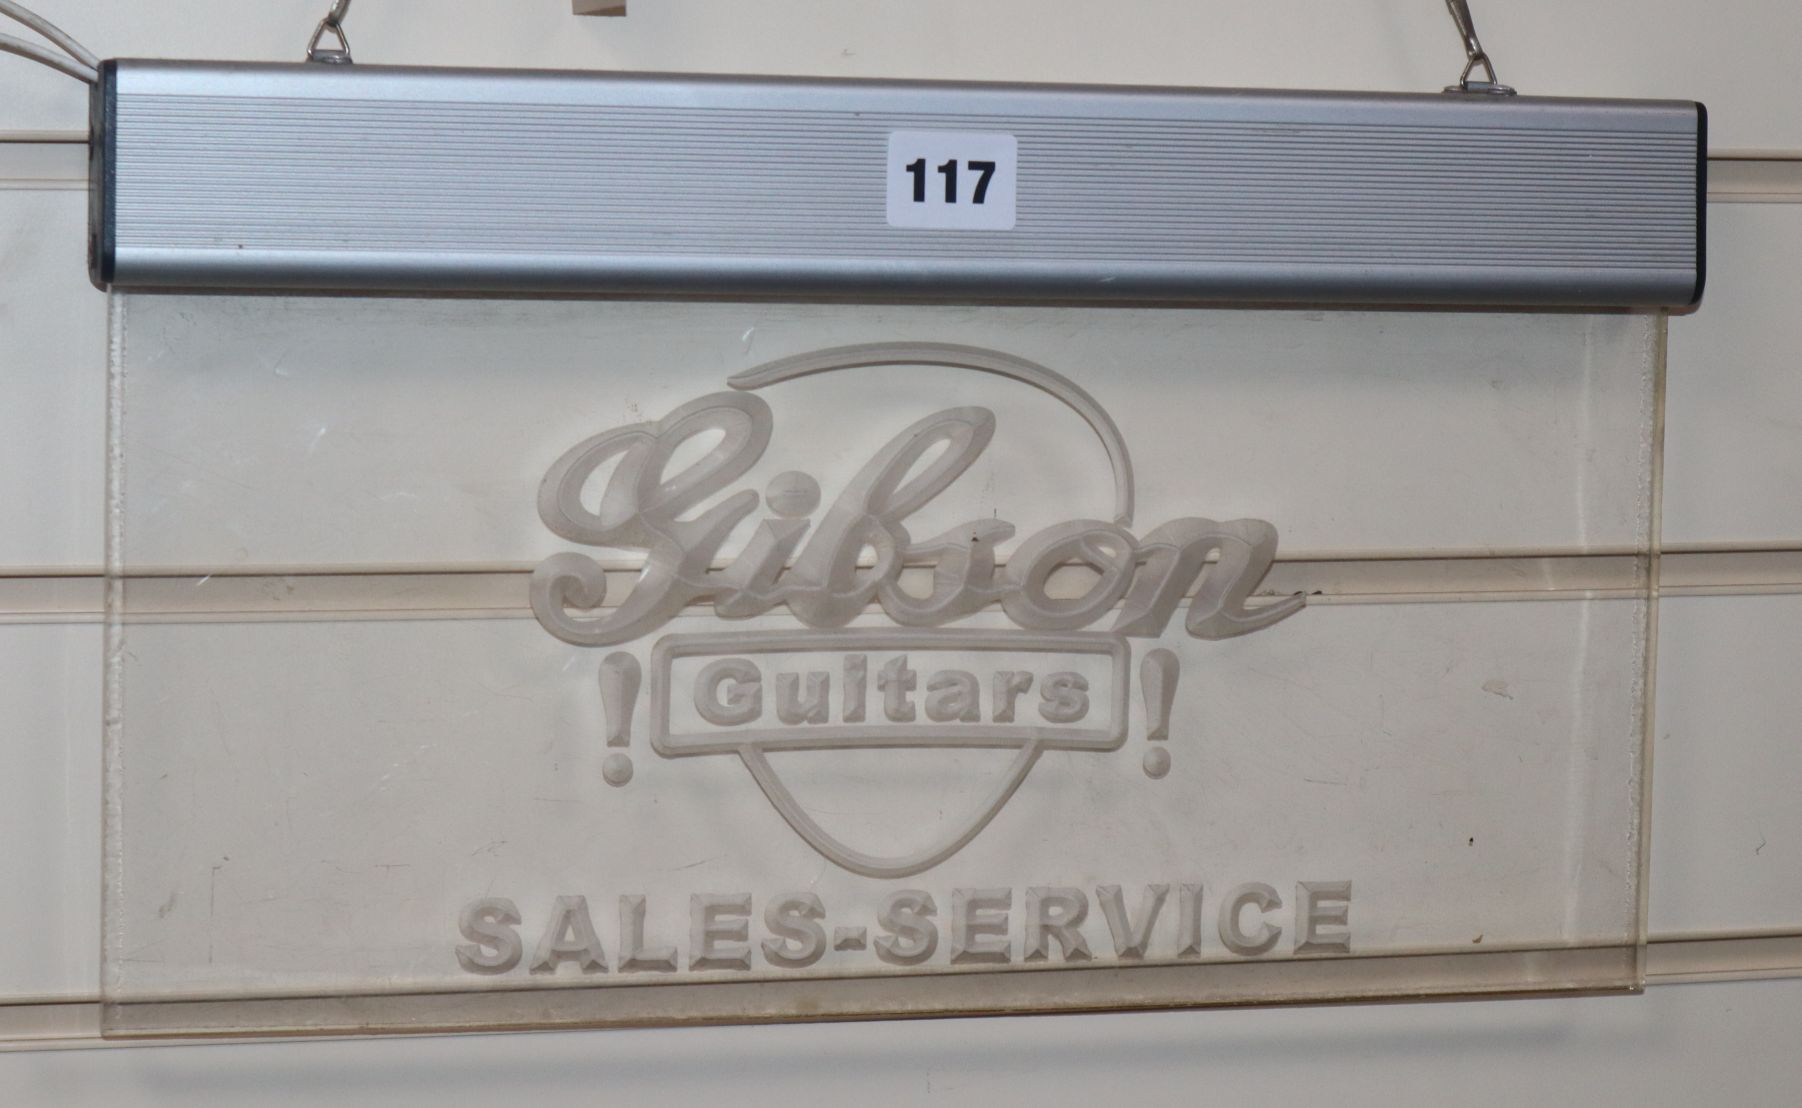 Lot 117 - Gibson guitars, Sales and Service sign